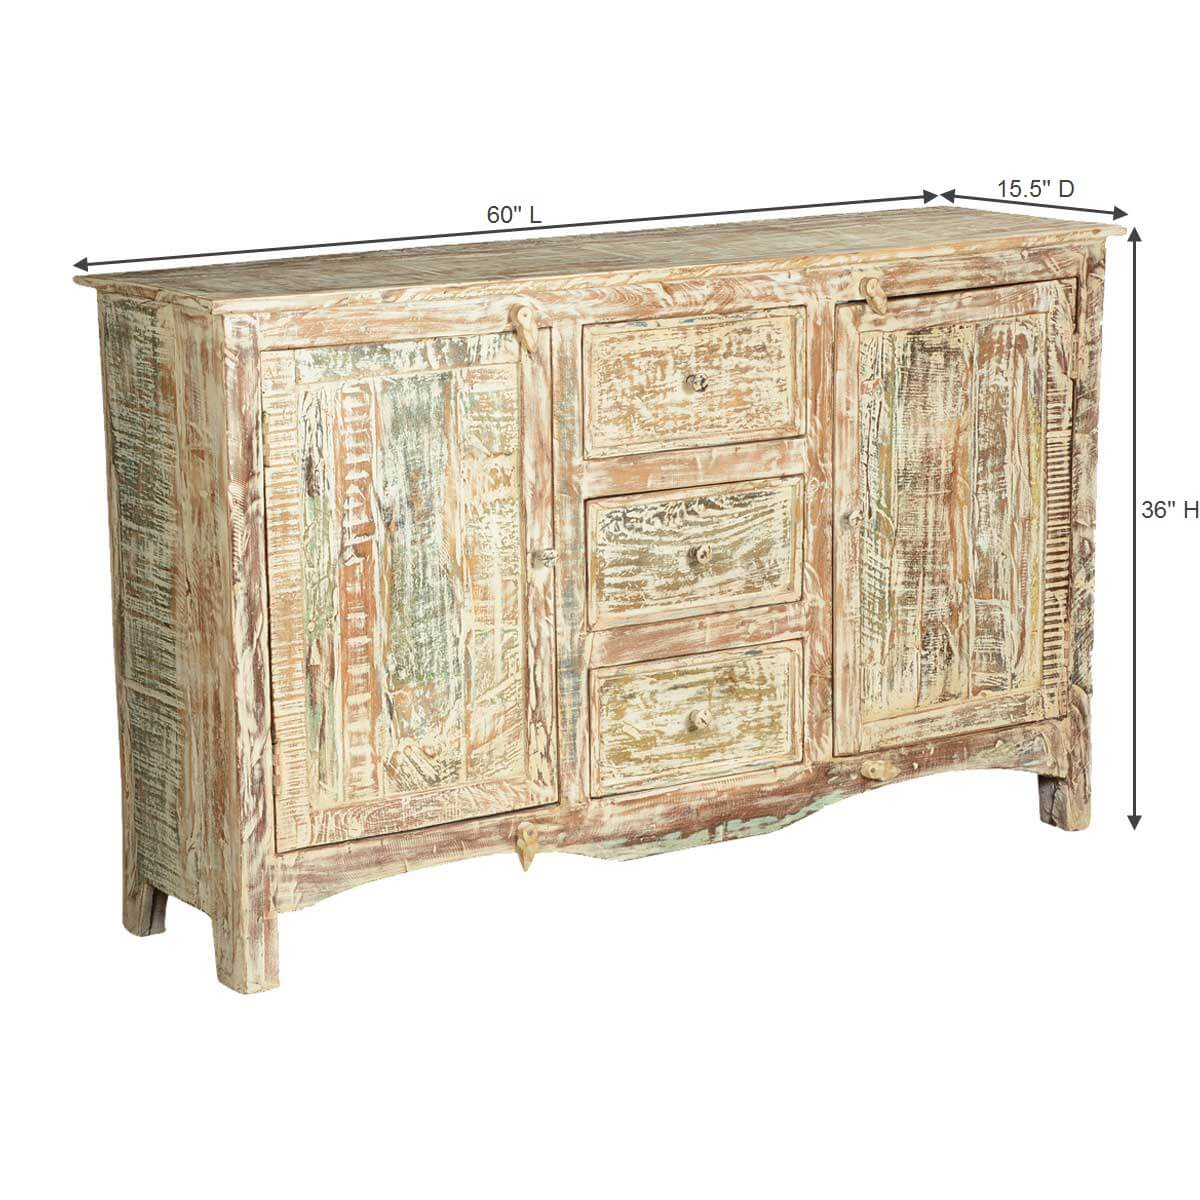 Adairville Distressed Mango Wood 3 Drawer Rustic Sideboard